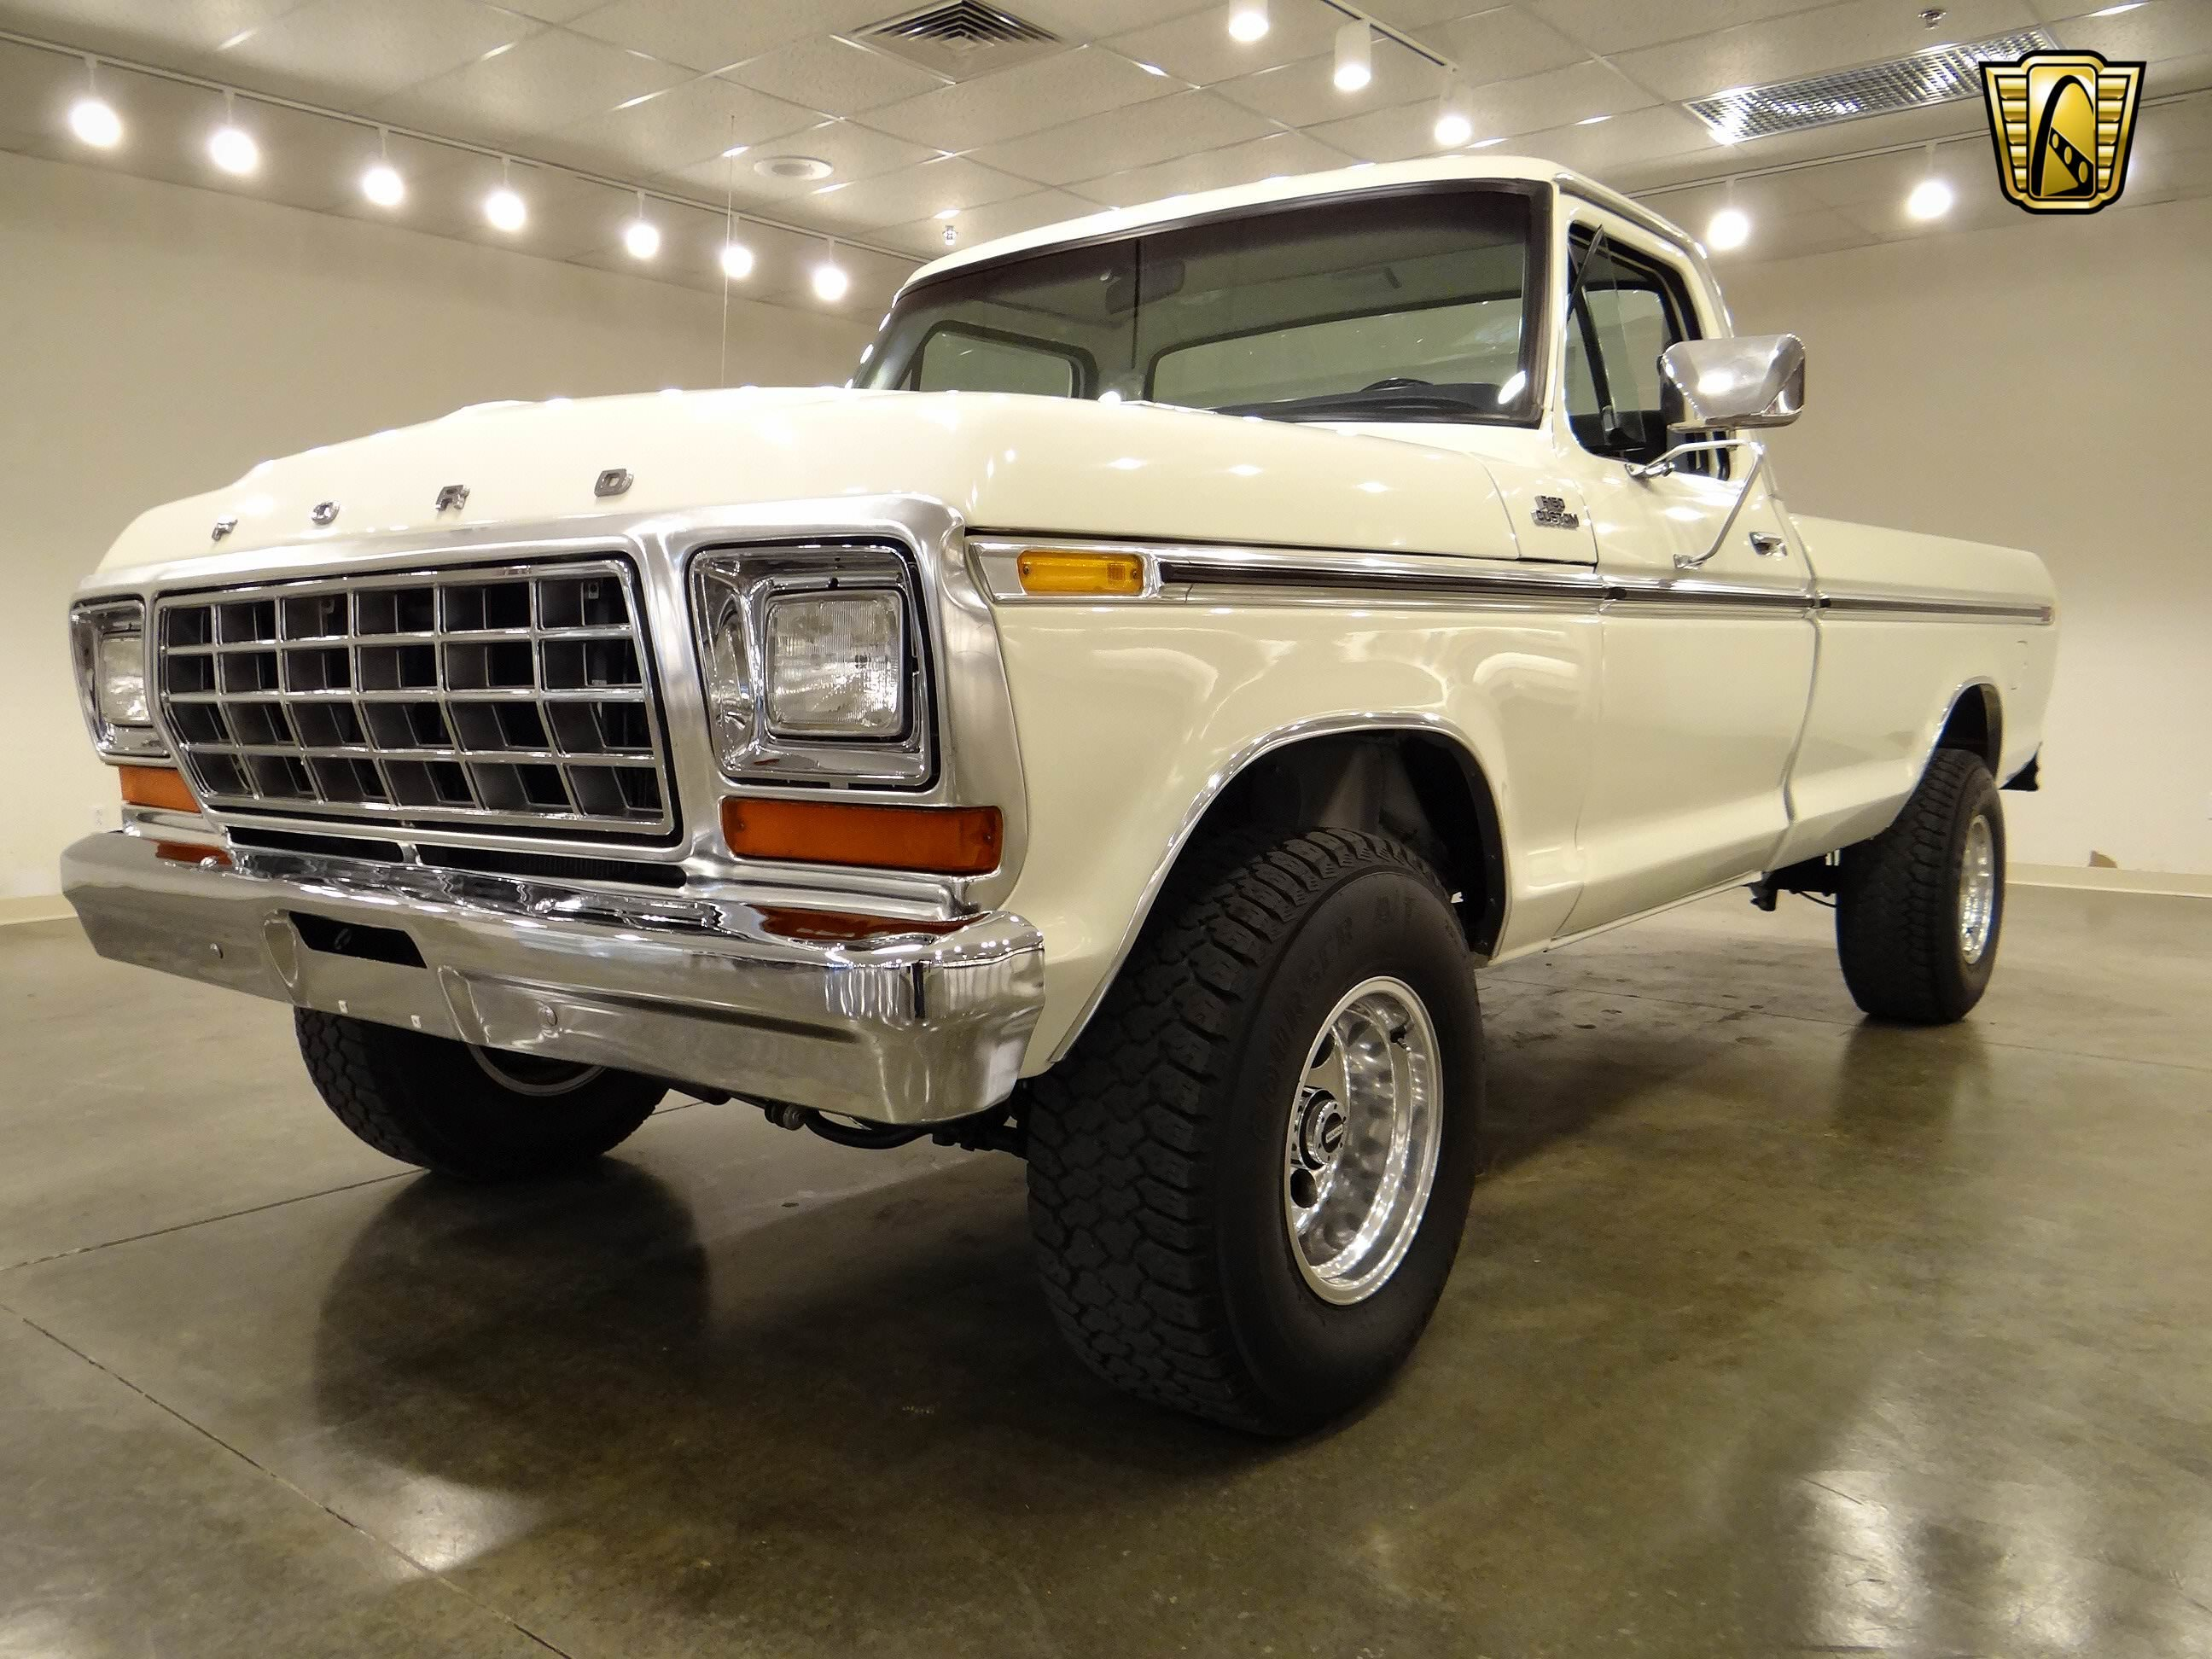 1979 Ford F150 4x4 pickup 19 wallpaper background 2592x1944